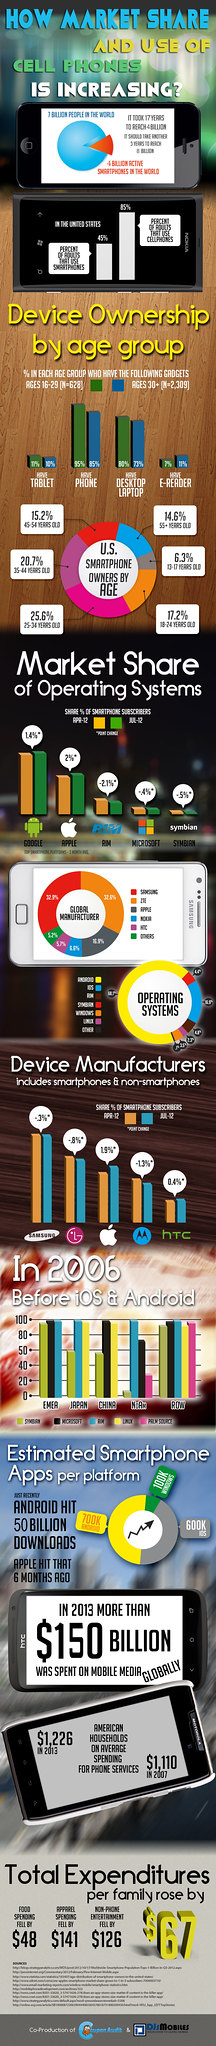 How market share and use of cell phones is increasing